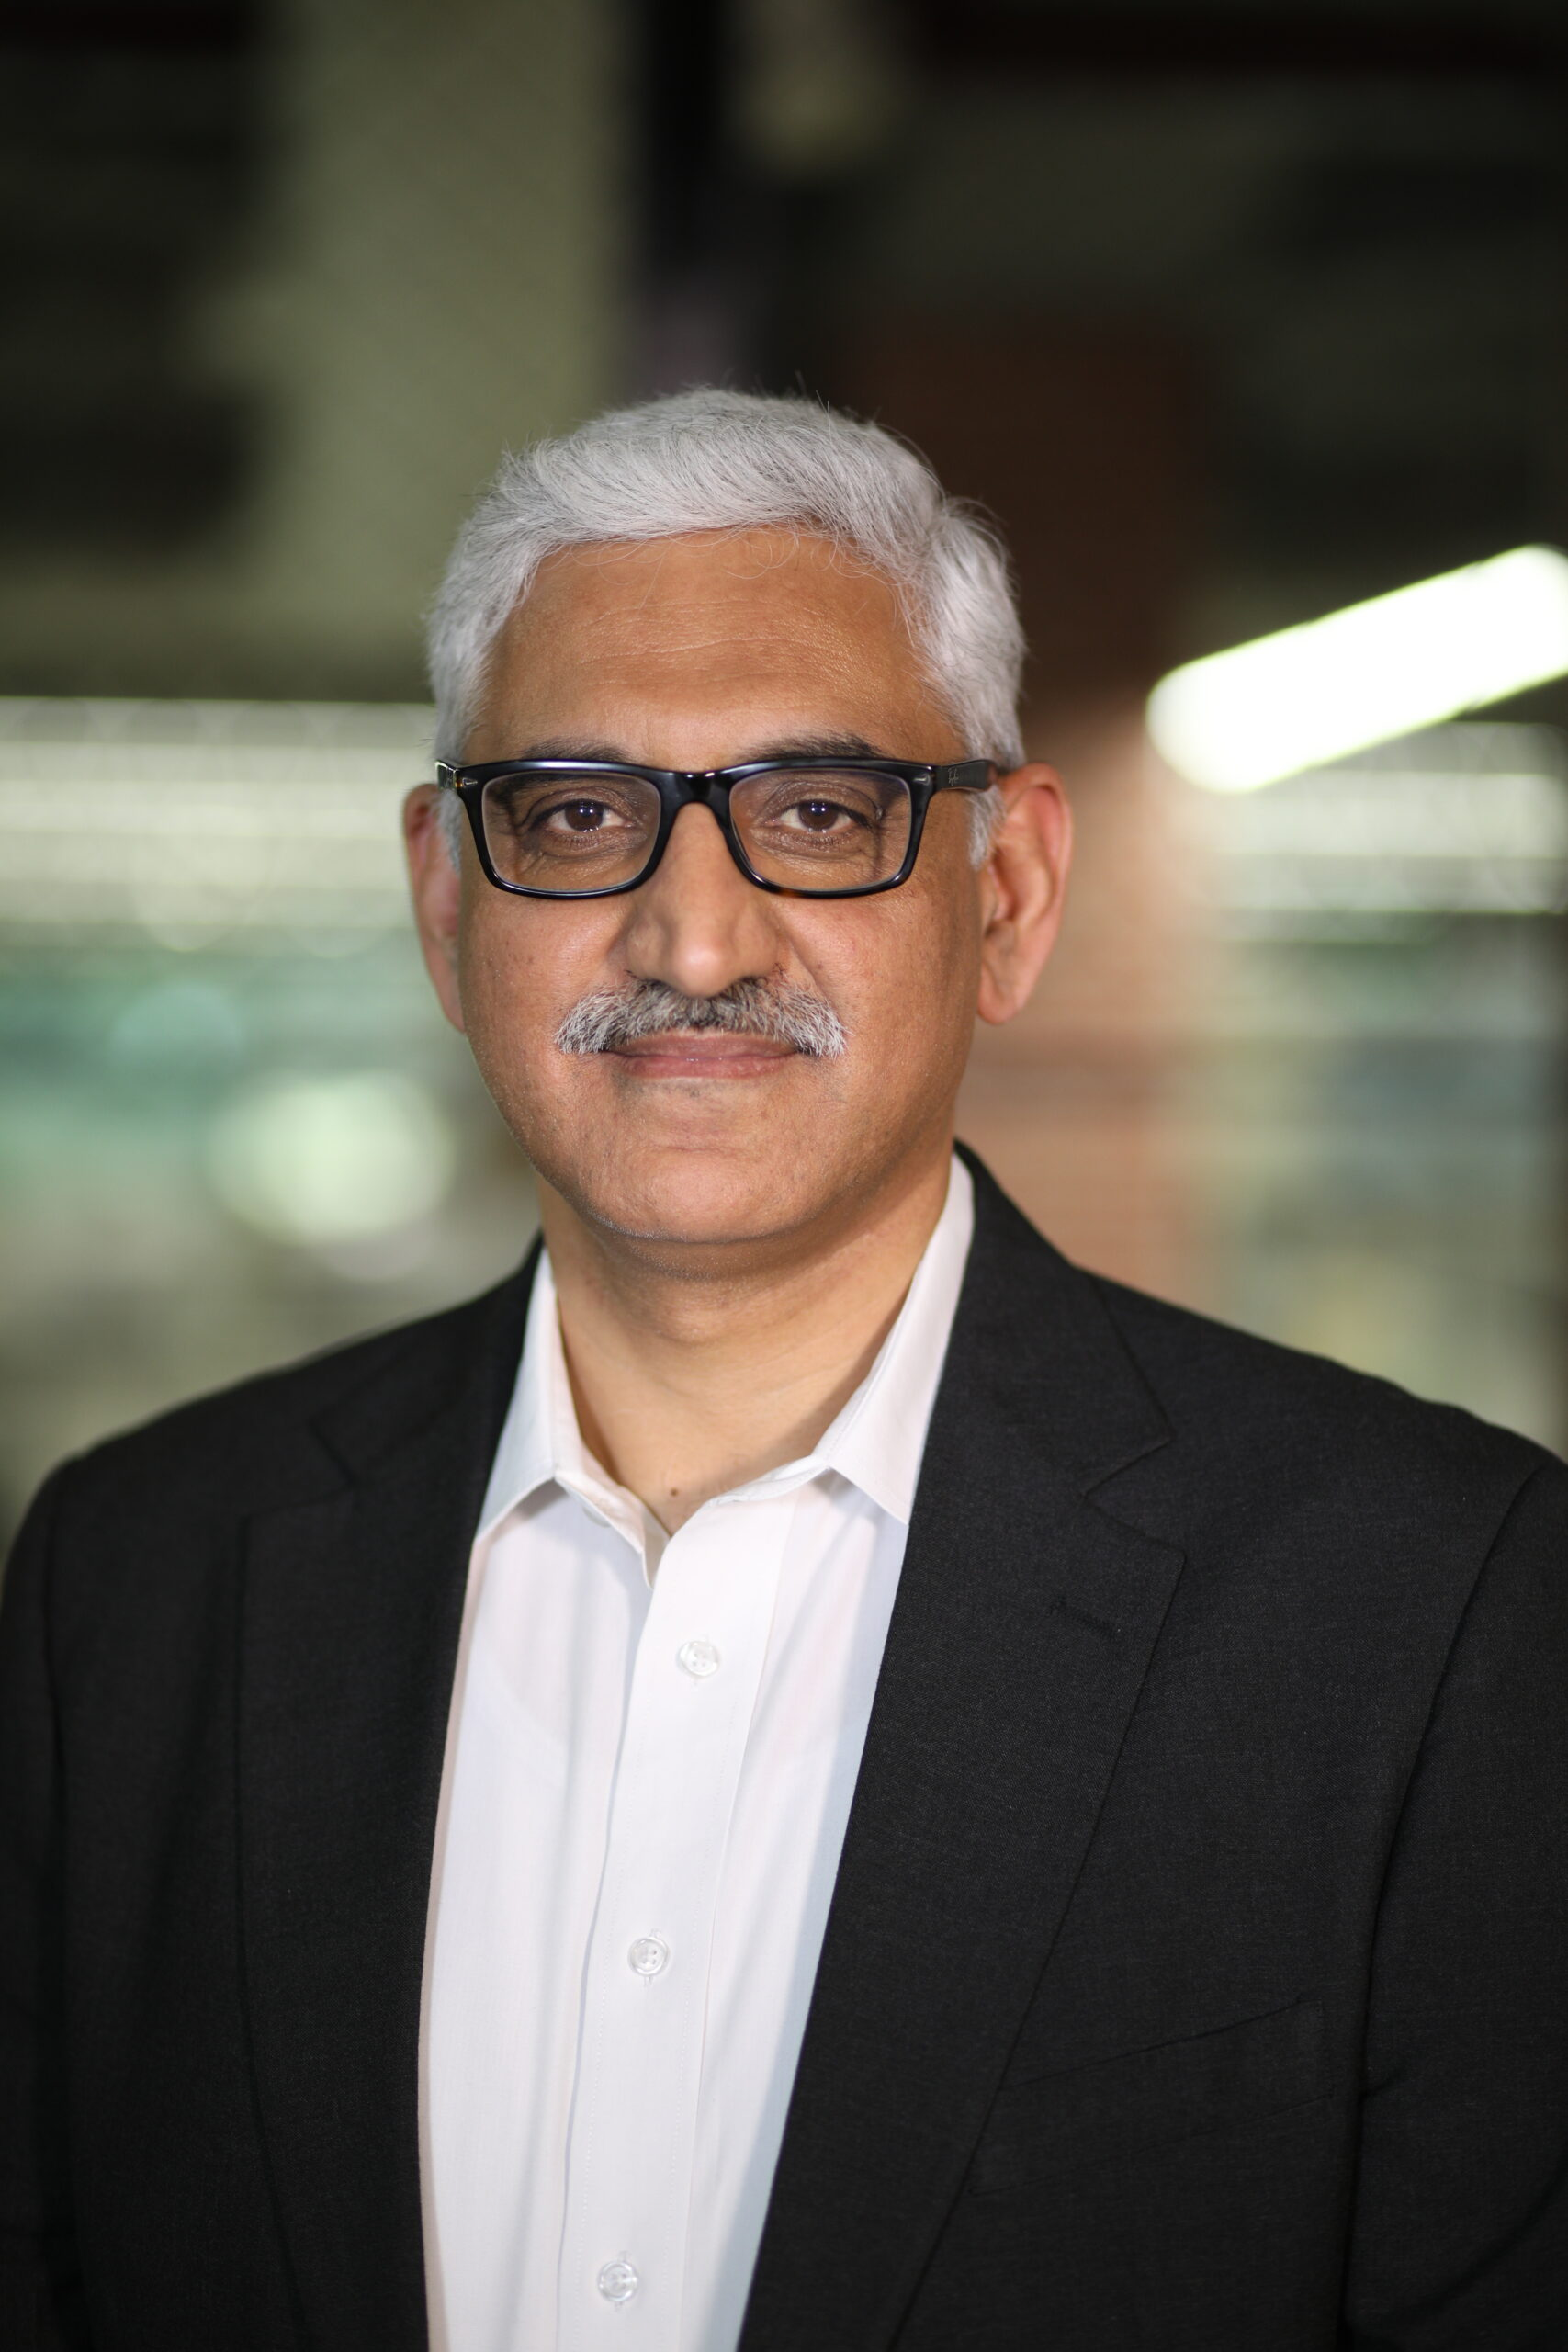 Rajesh Awasthi, Associate Vice President and Global Head, Managed Hosting and Cloud Services, Tata Communications